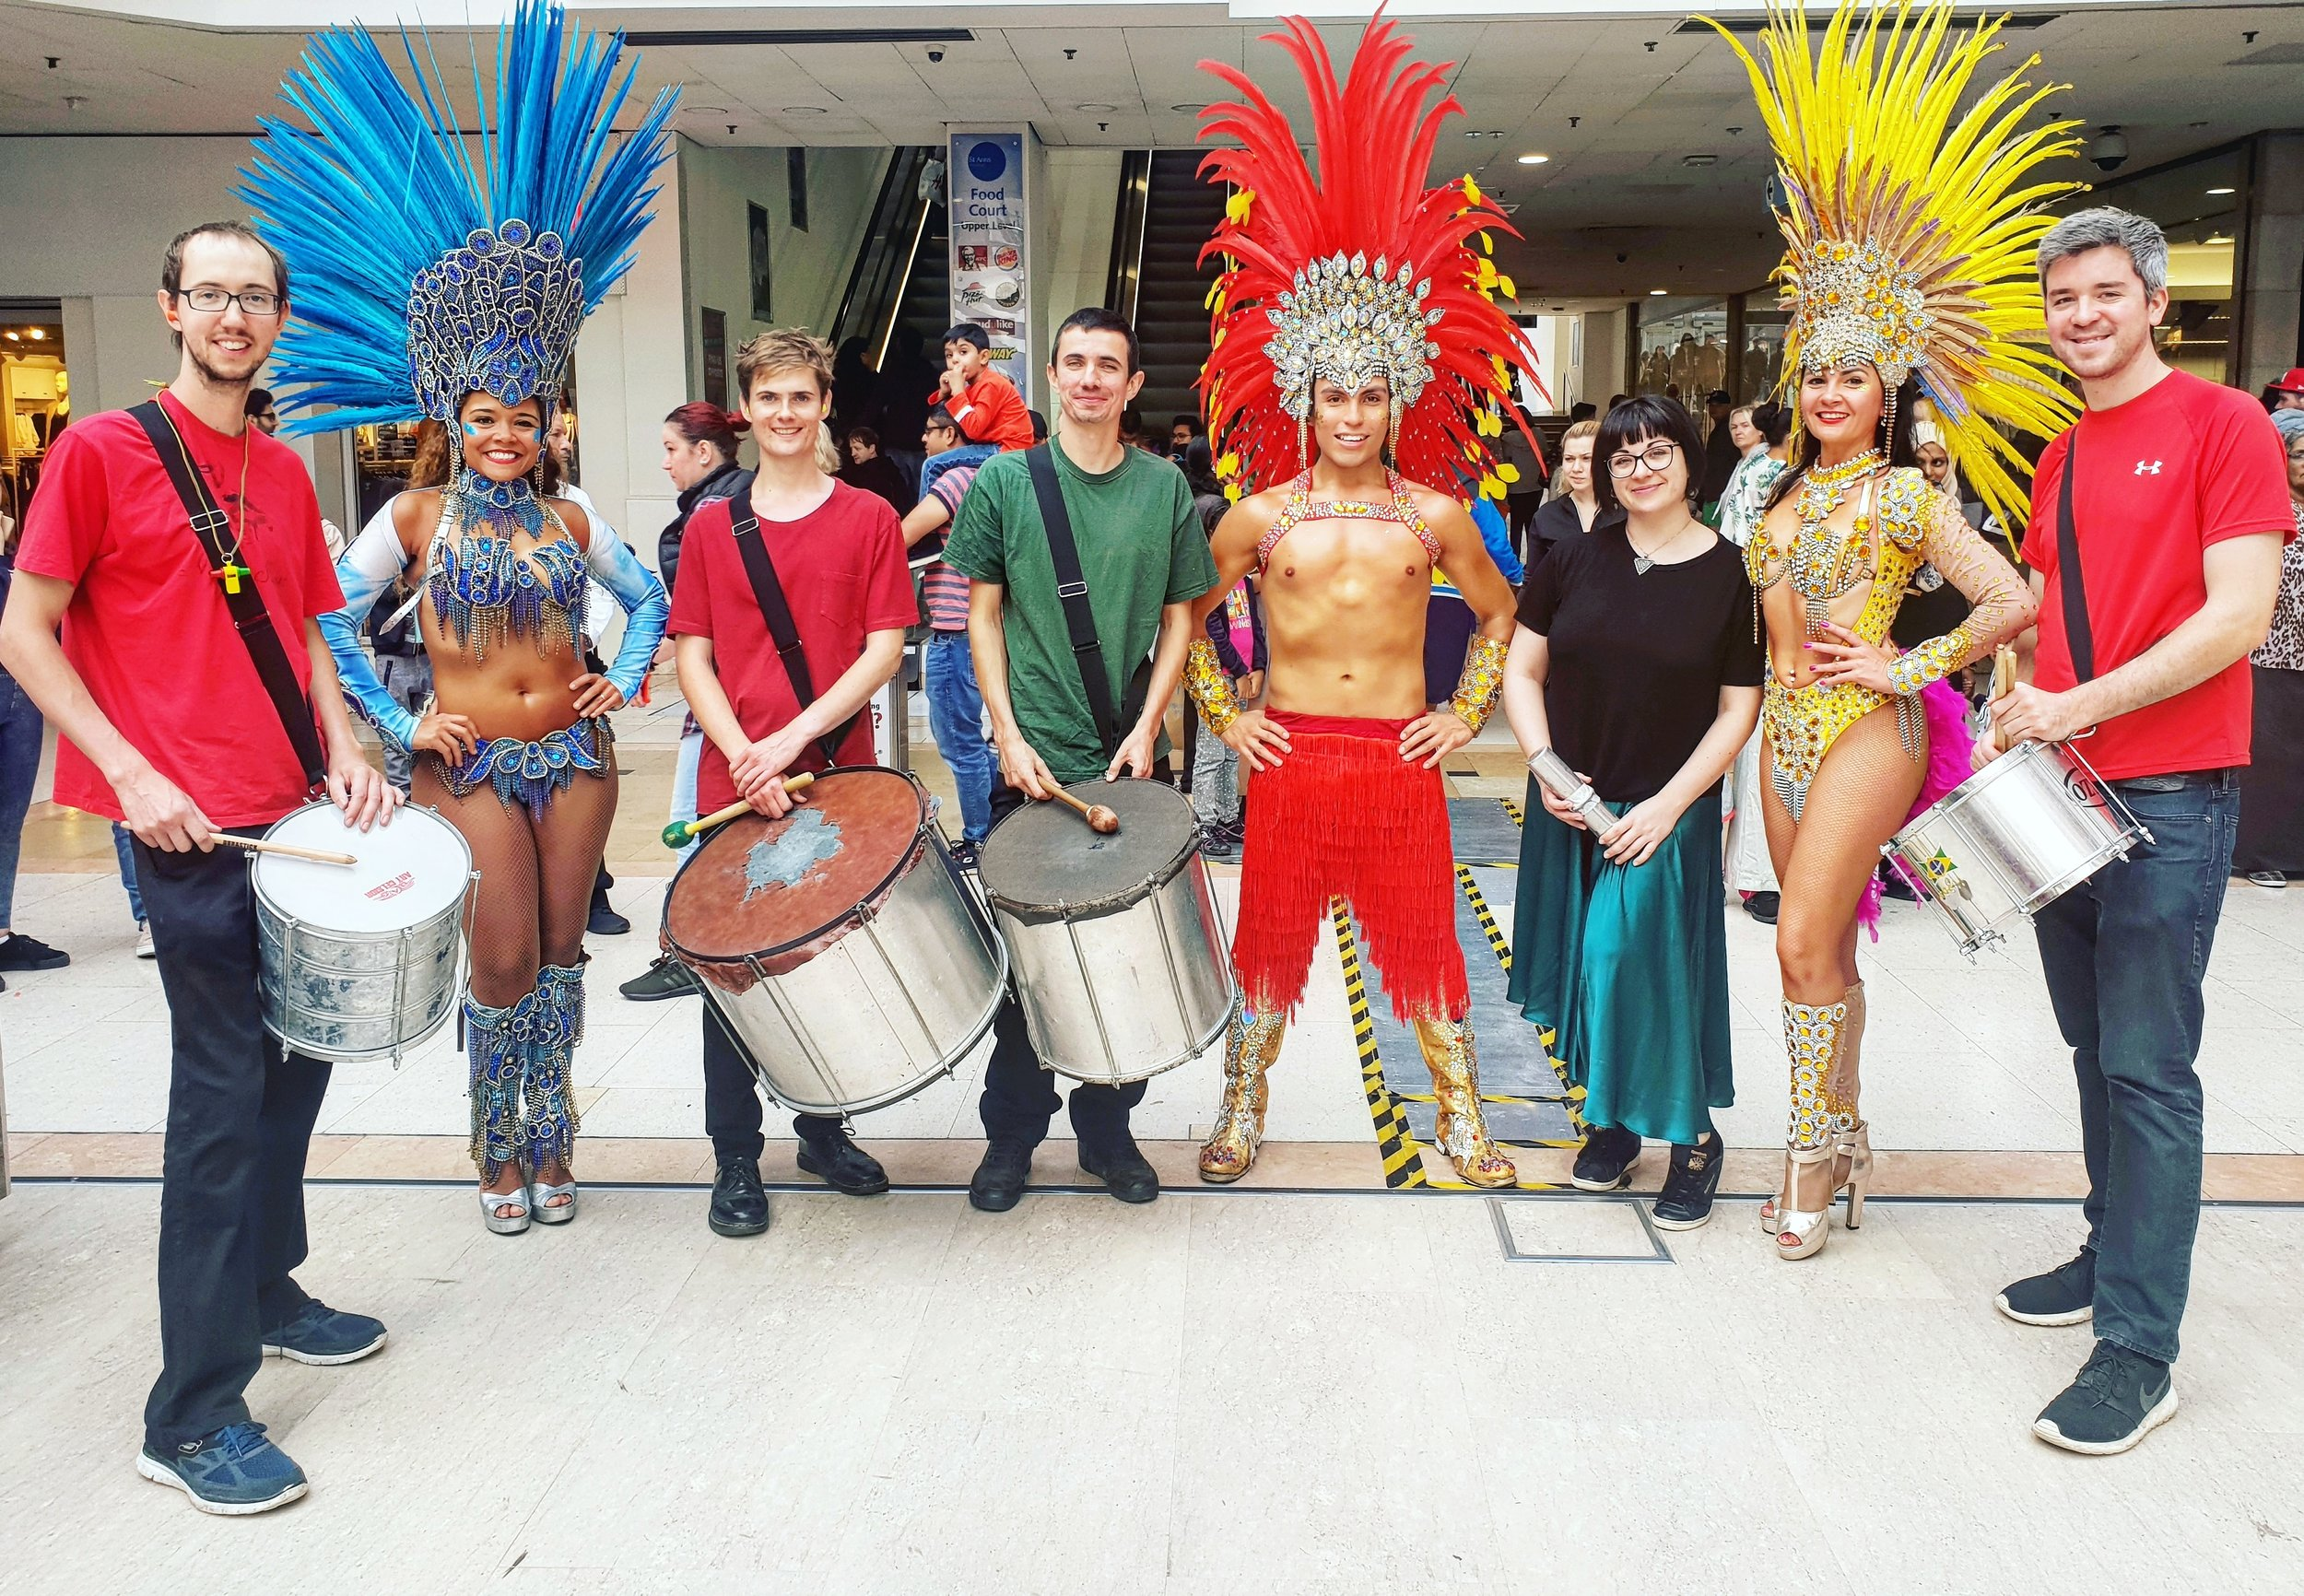 Looking for that  carnival  atmosphere? We perform  authentic Brazilian Samba  suited to any Rio themed party or event. Hire Brazilian Carnival Samba dancers from us and let our showgirls and samba boys bring that sizzle to the stage with a sparkling Brazilian Samba performance.